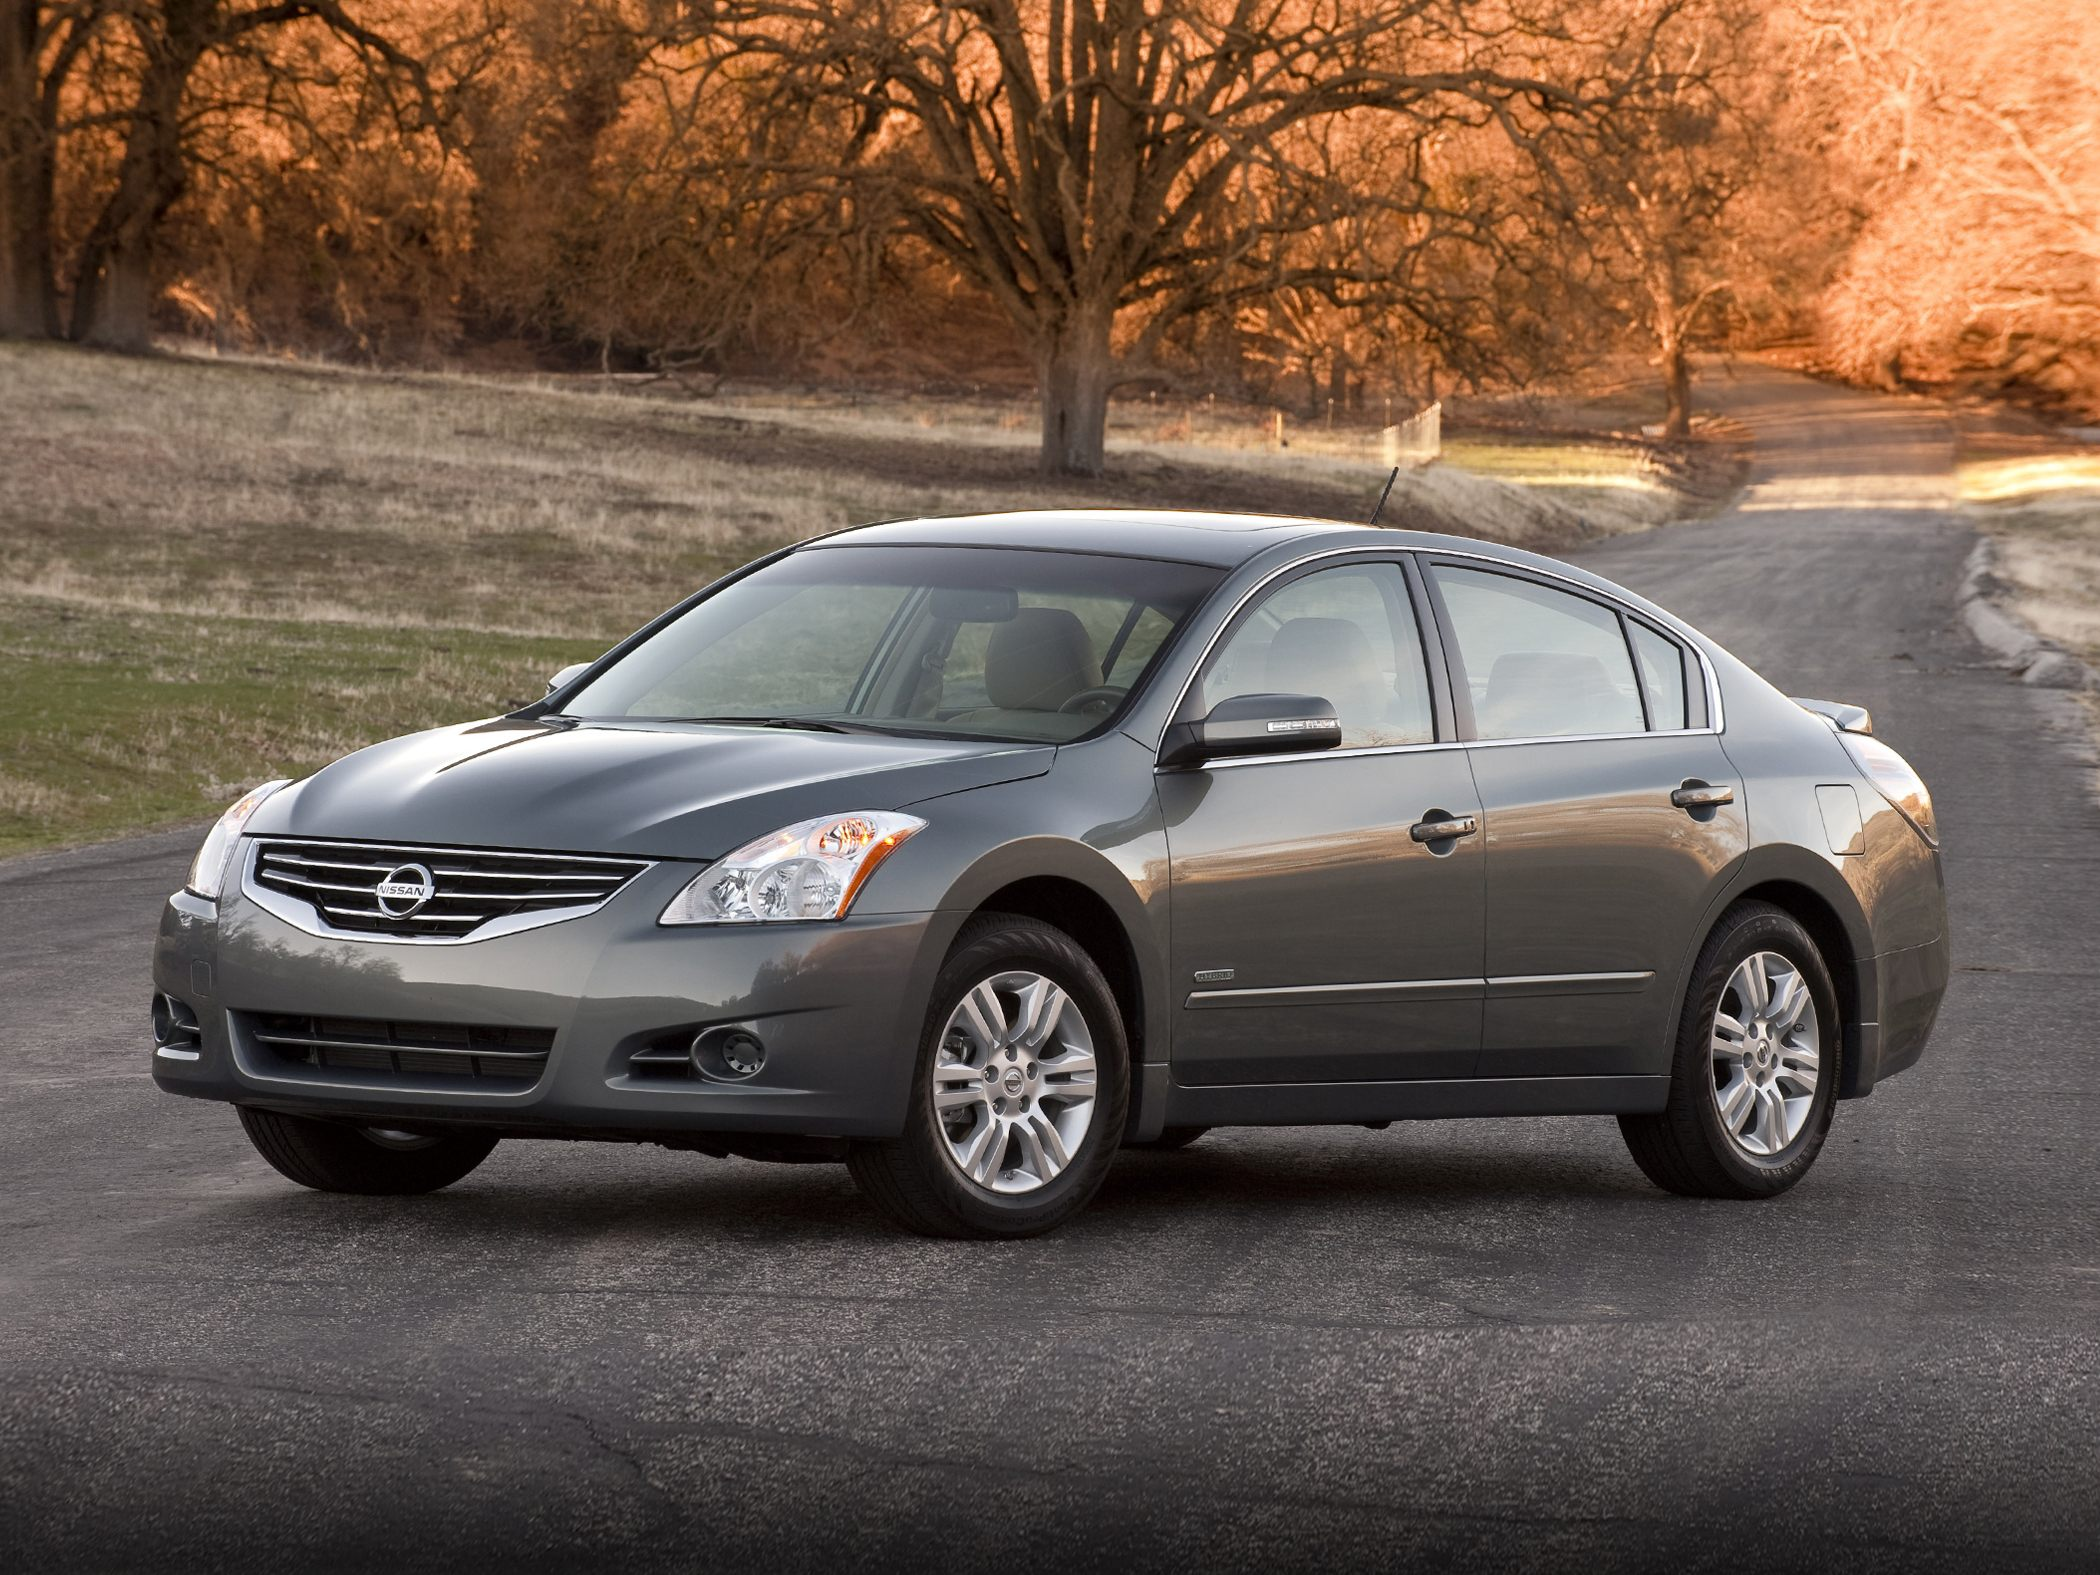 2011 nissan altima hybrid - information and photos - zombiedrive